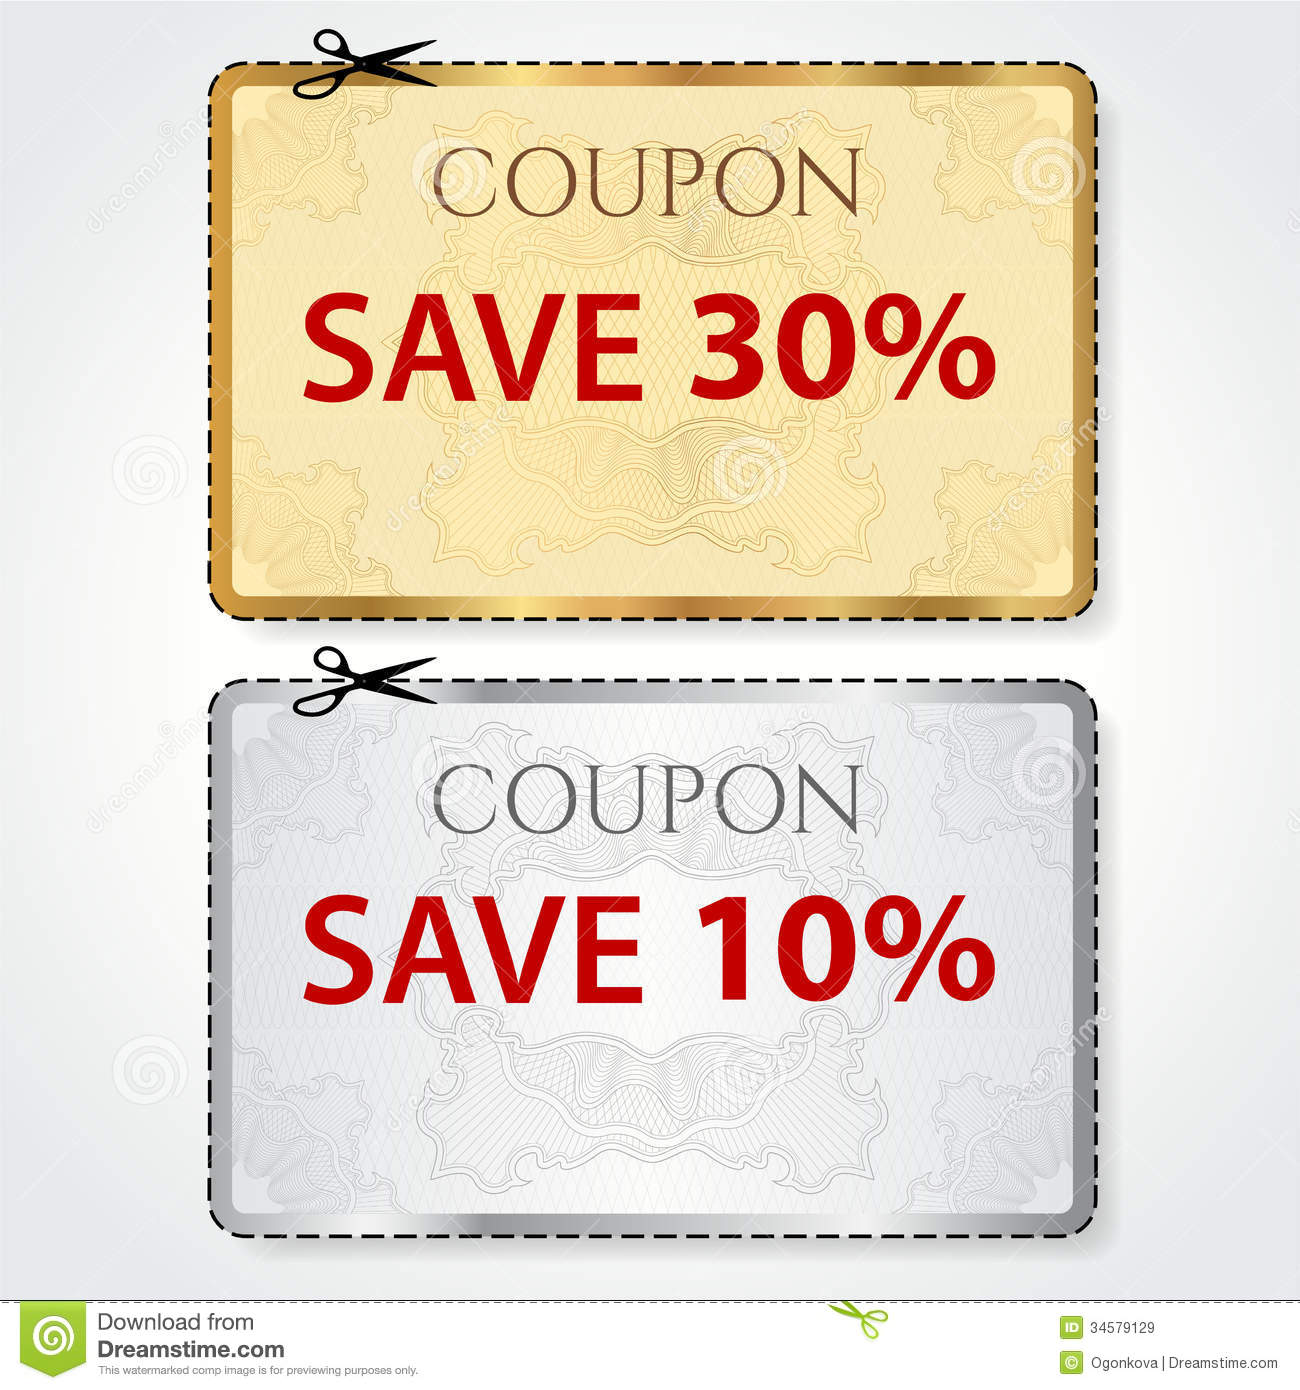 Sonidolatinoradio  Discount Coupons Templates